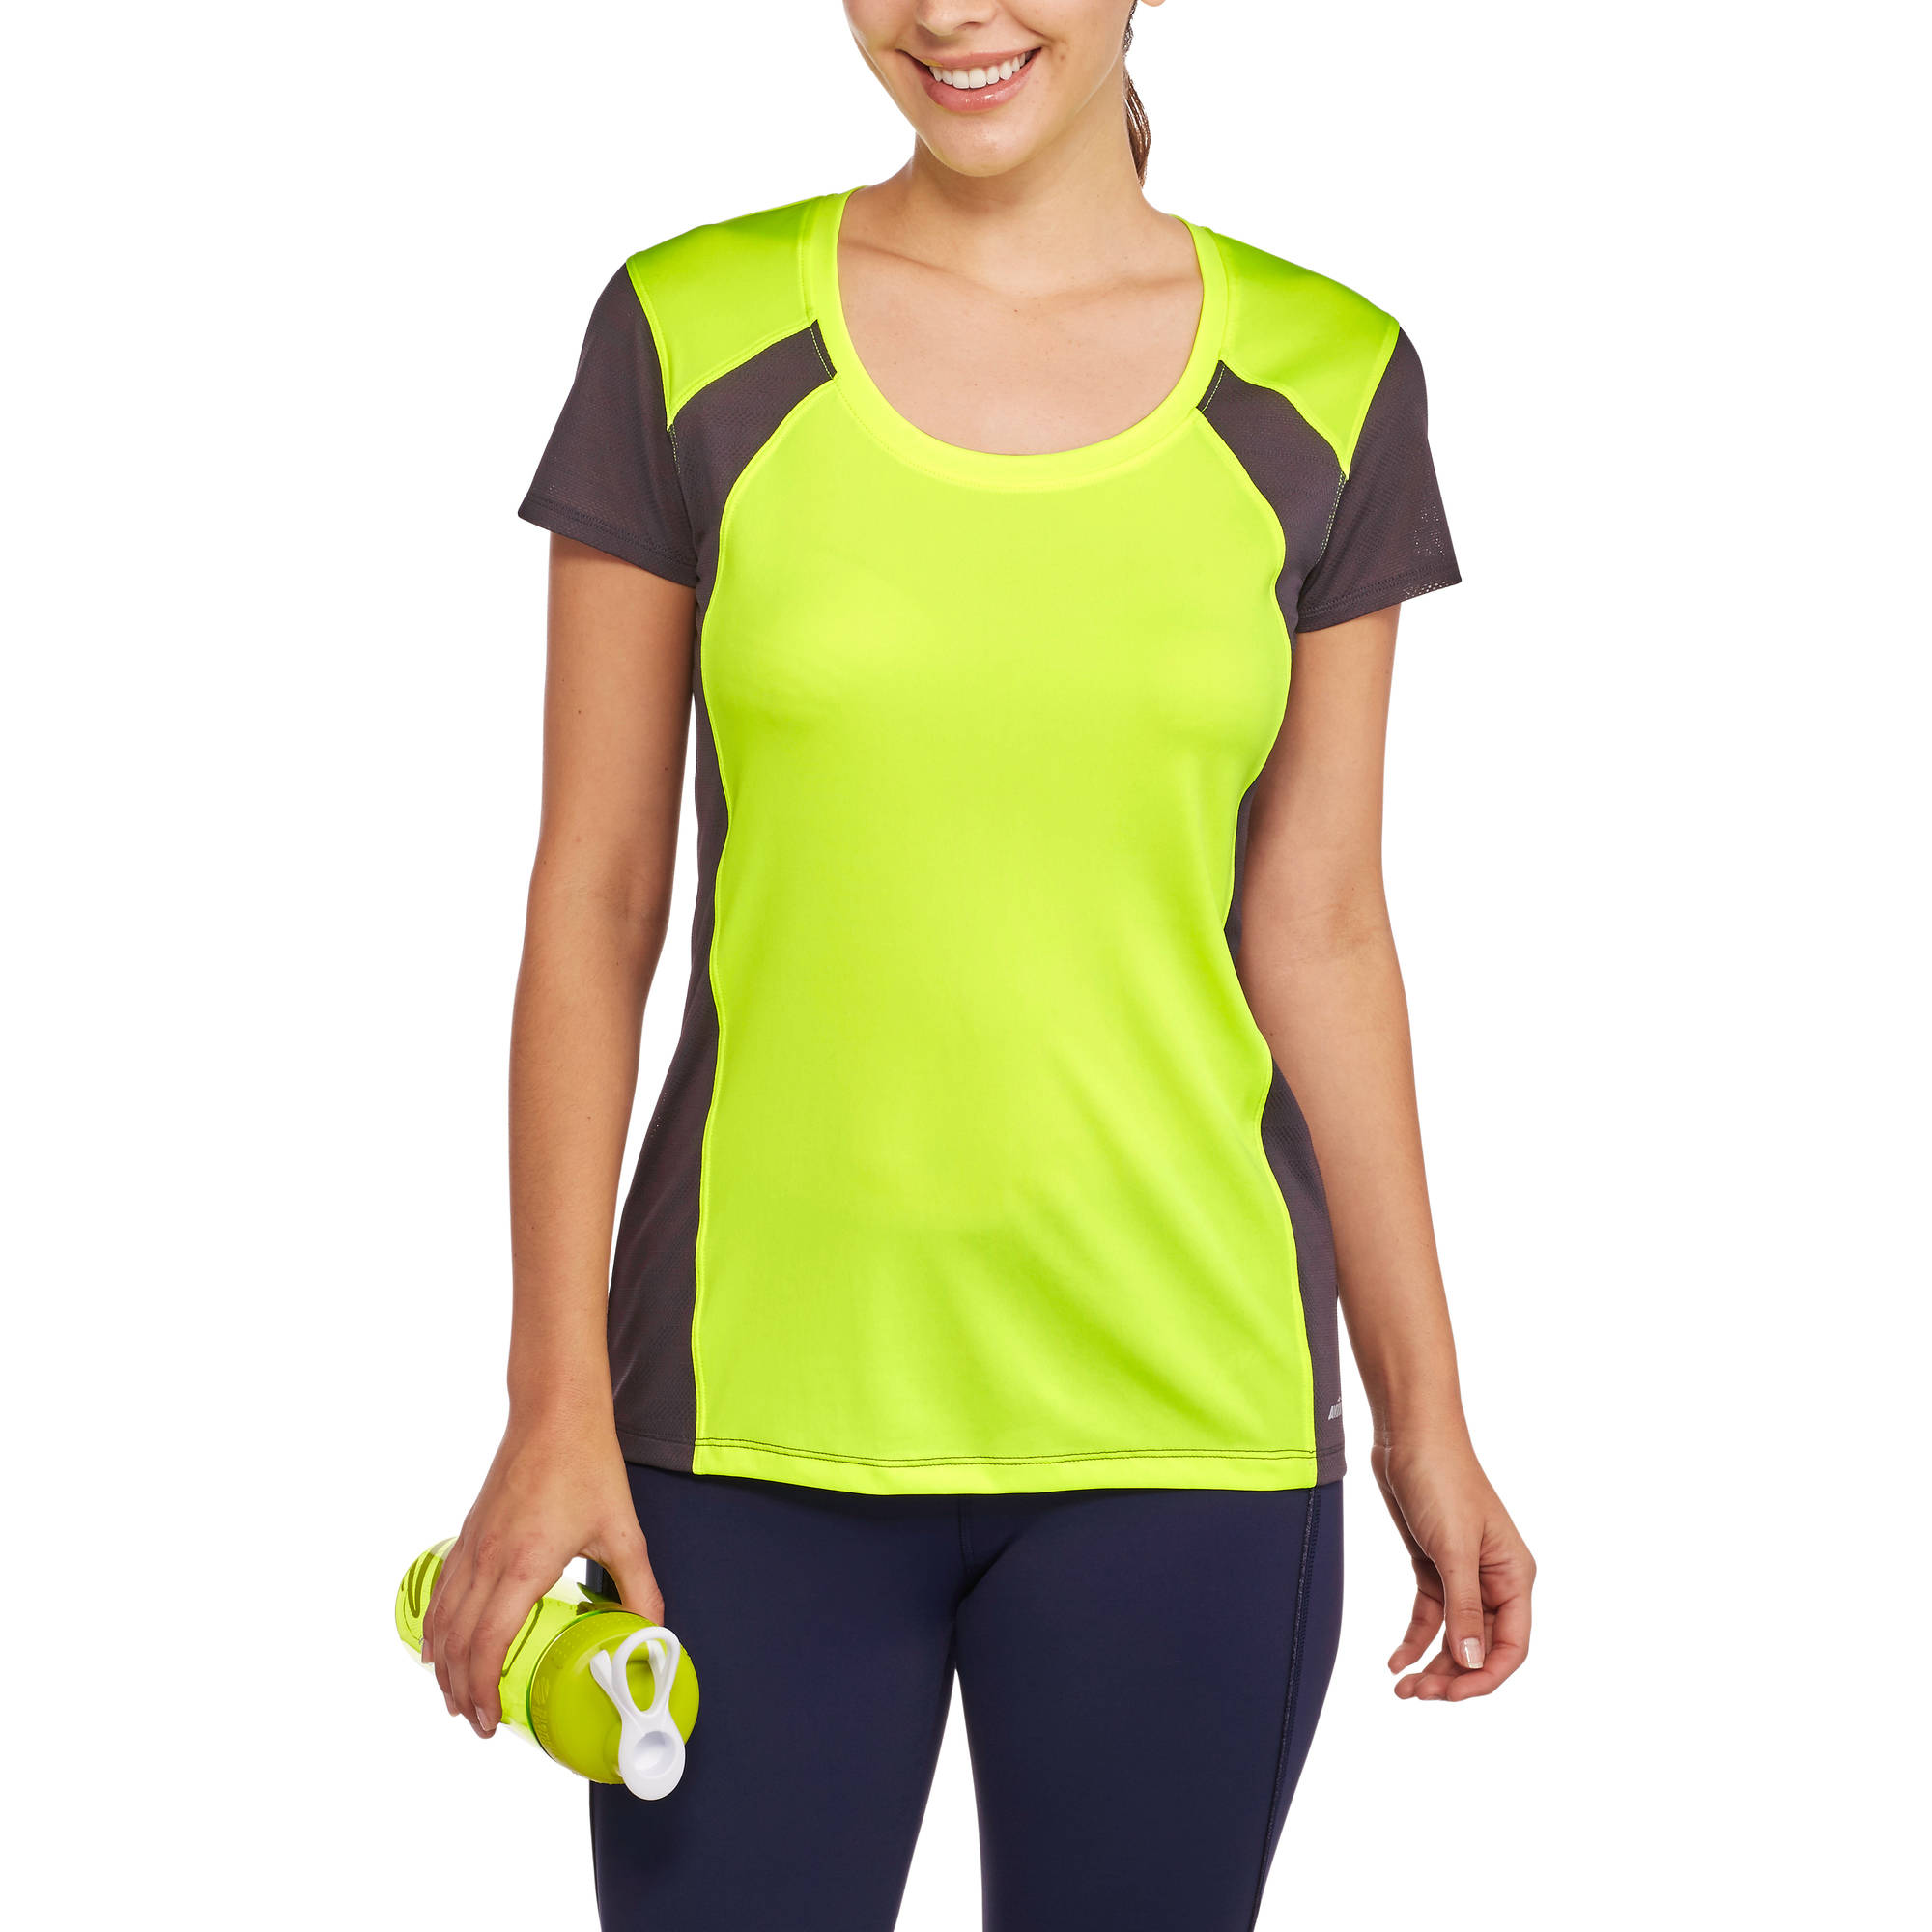 Avia Women's Active Performance Colorblock Tee With Moisture Wicking